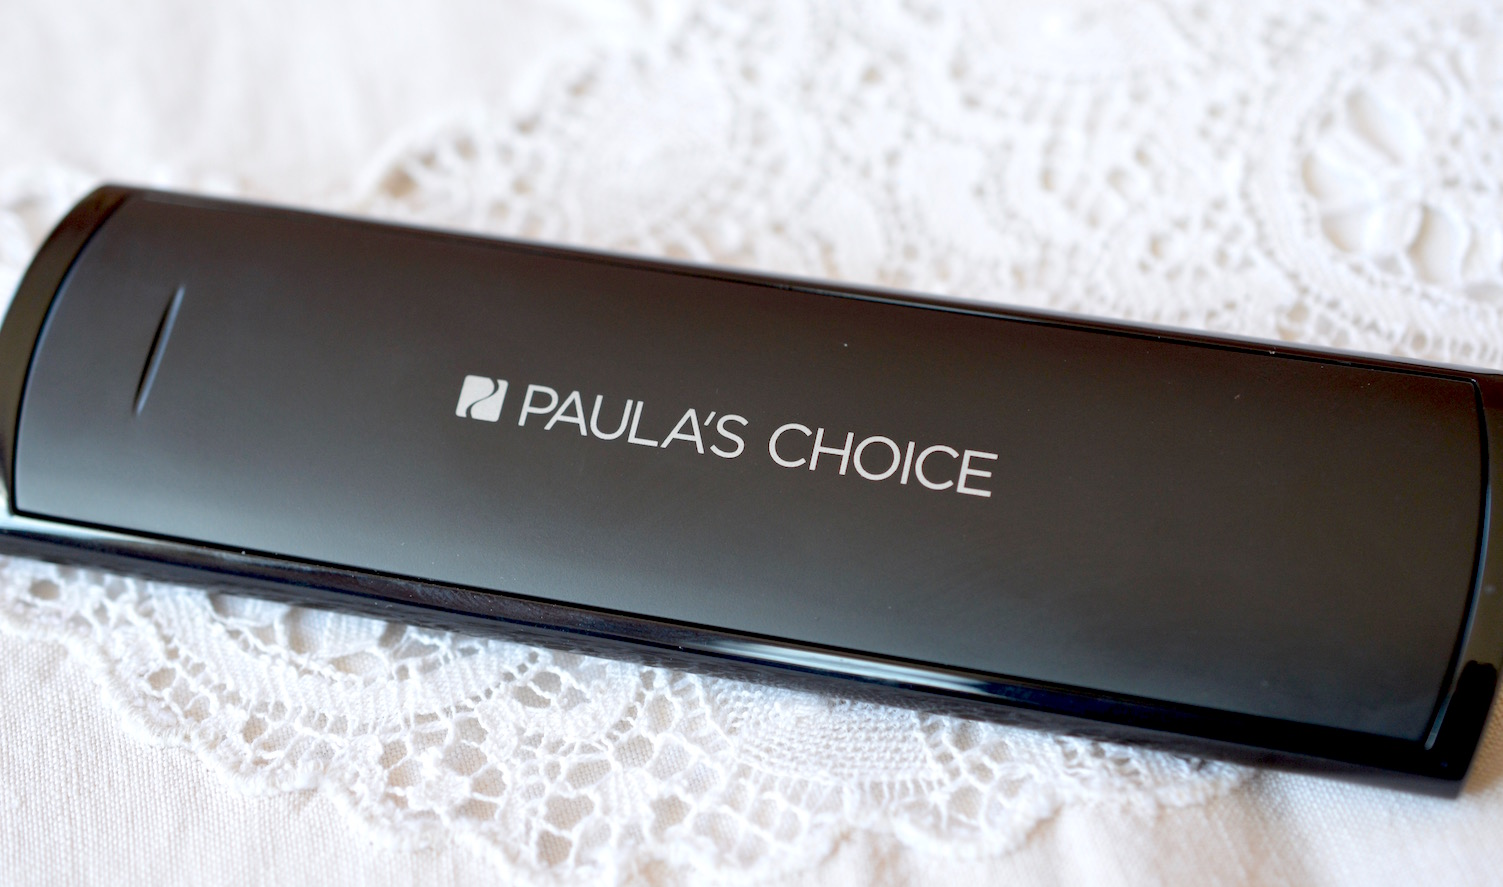 Paulas choice eye